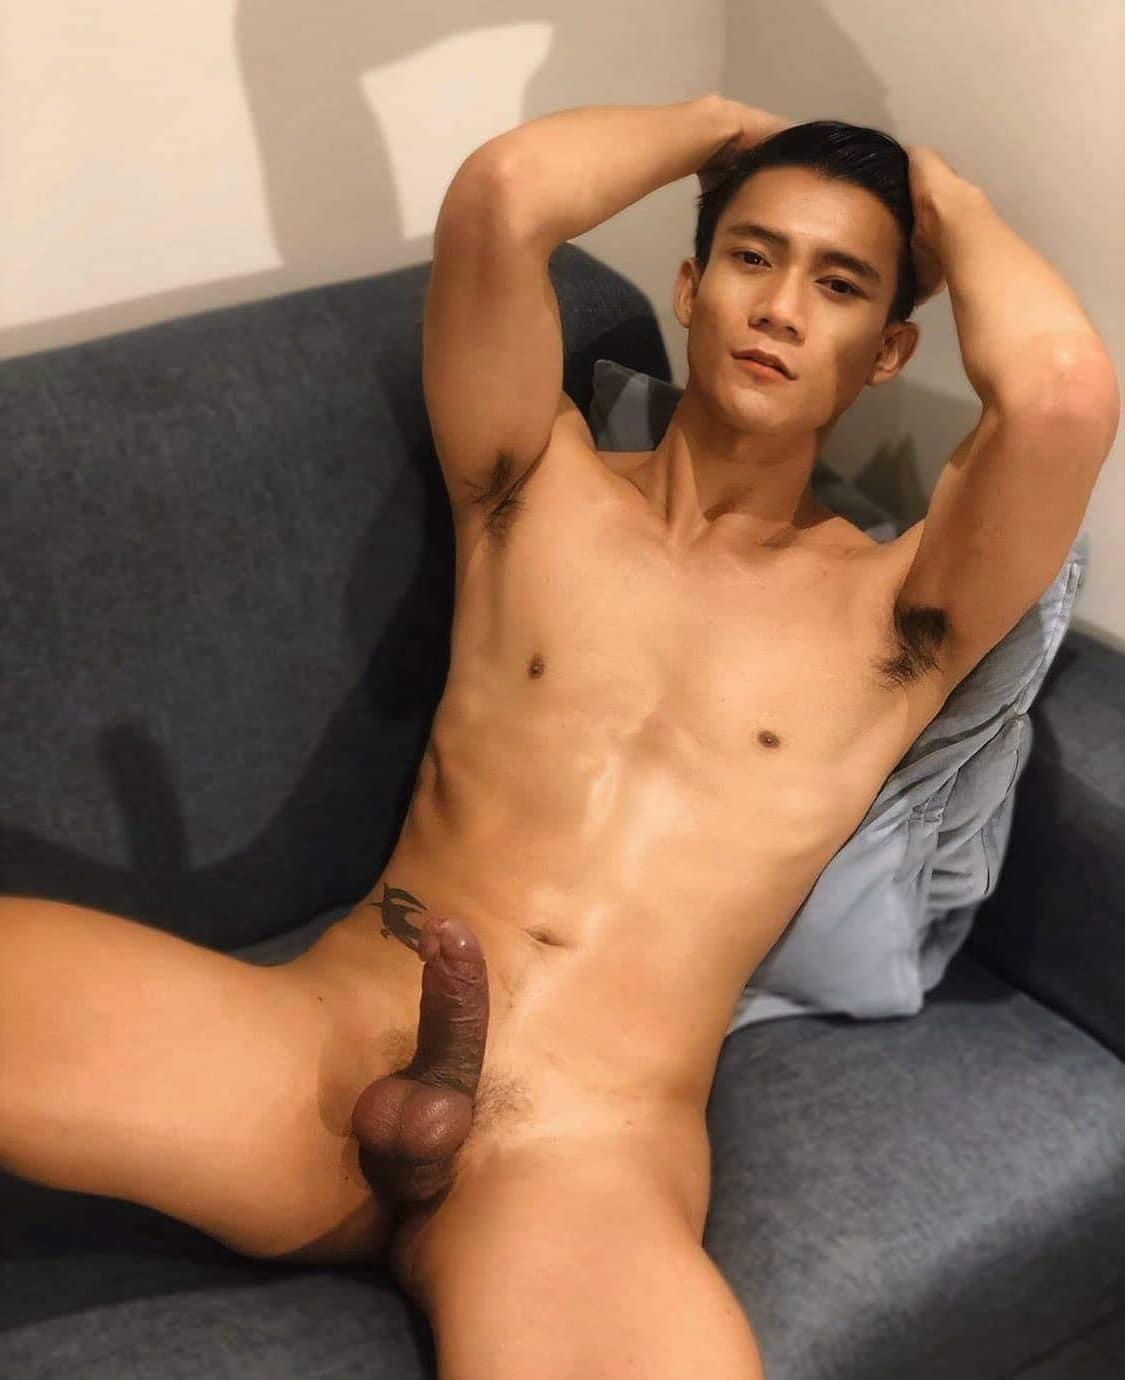 Shaved balls and hard cock